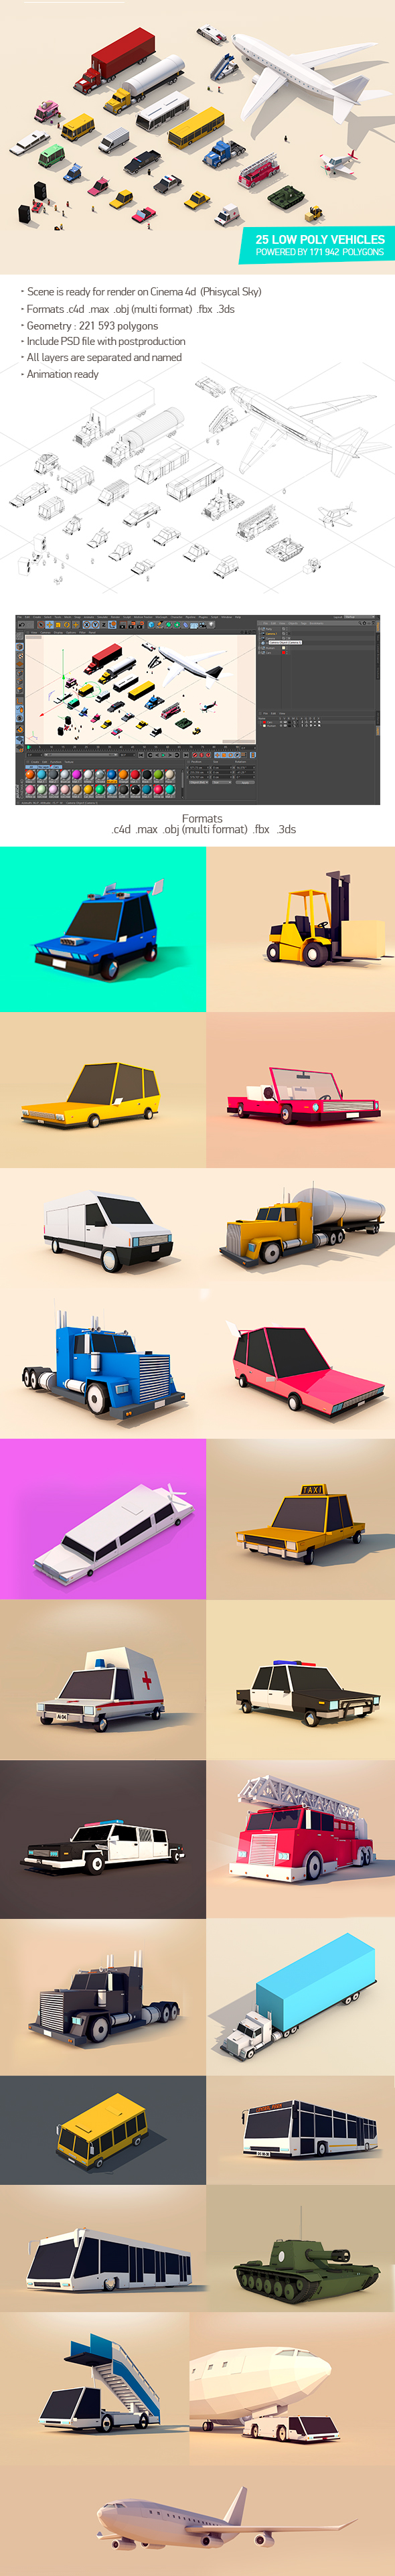 Low Poly City Cars Vehicles Pack - 3DOcean Item for Sale